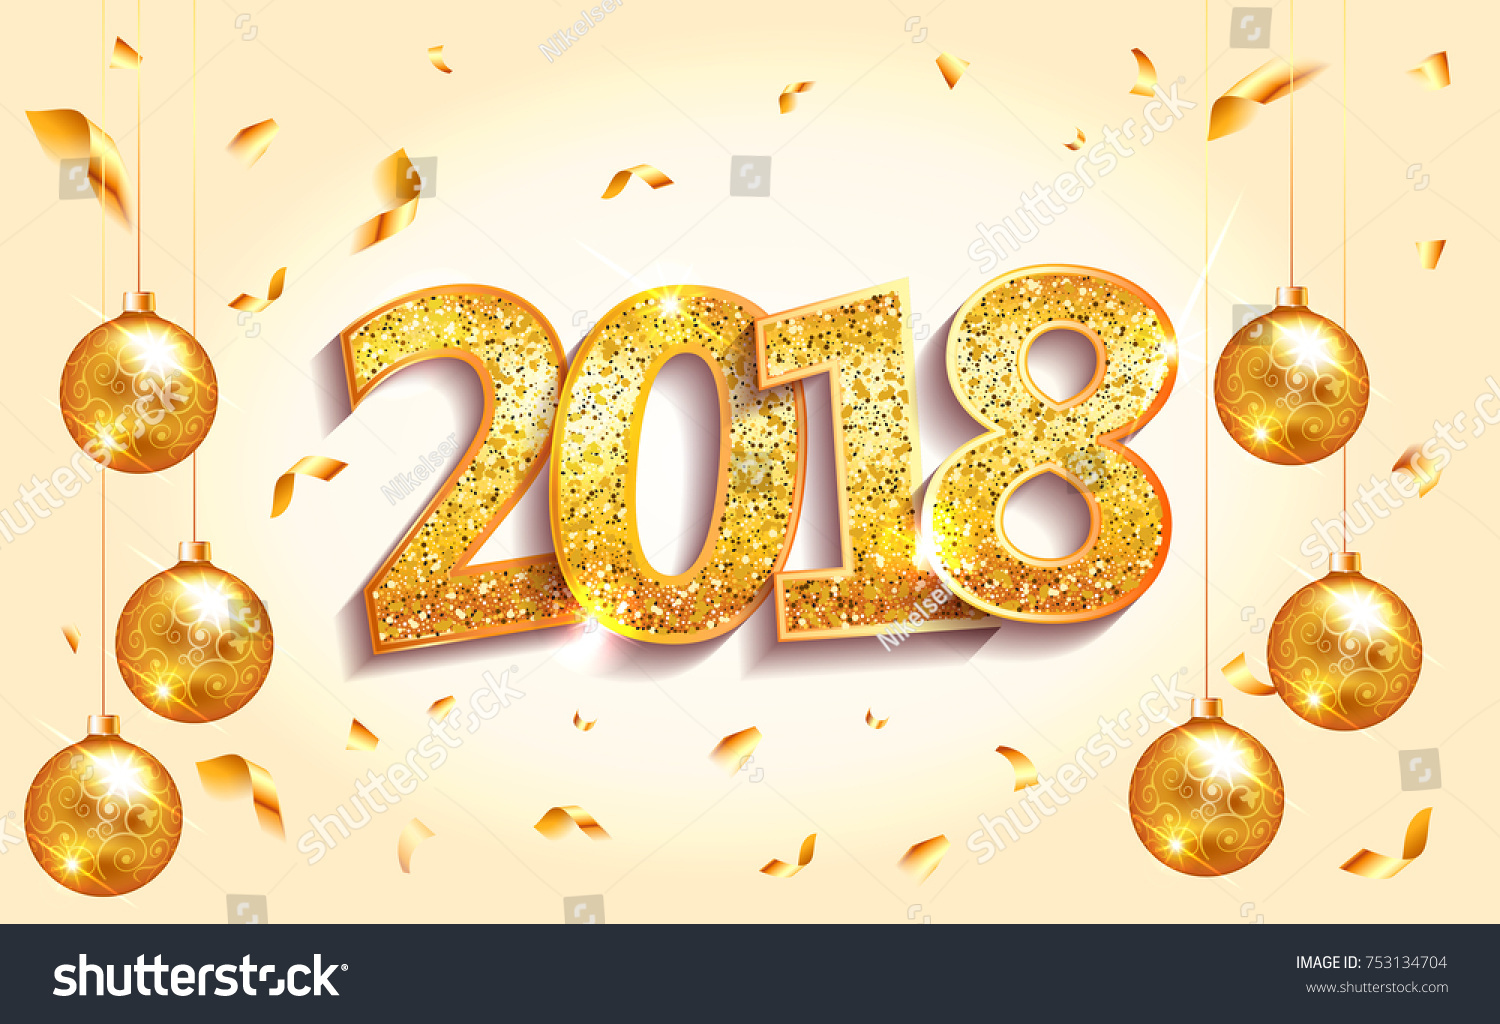 2018 happy new year banner with numbers on light background gold glitter sparkles numbers lettering